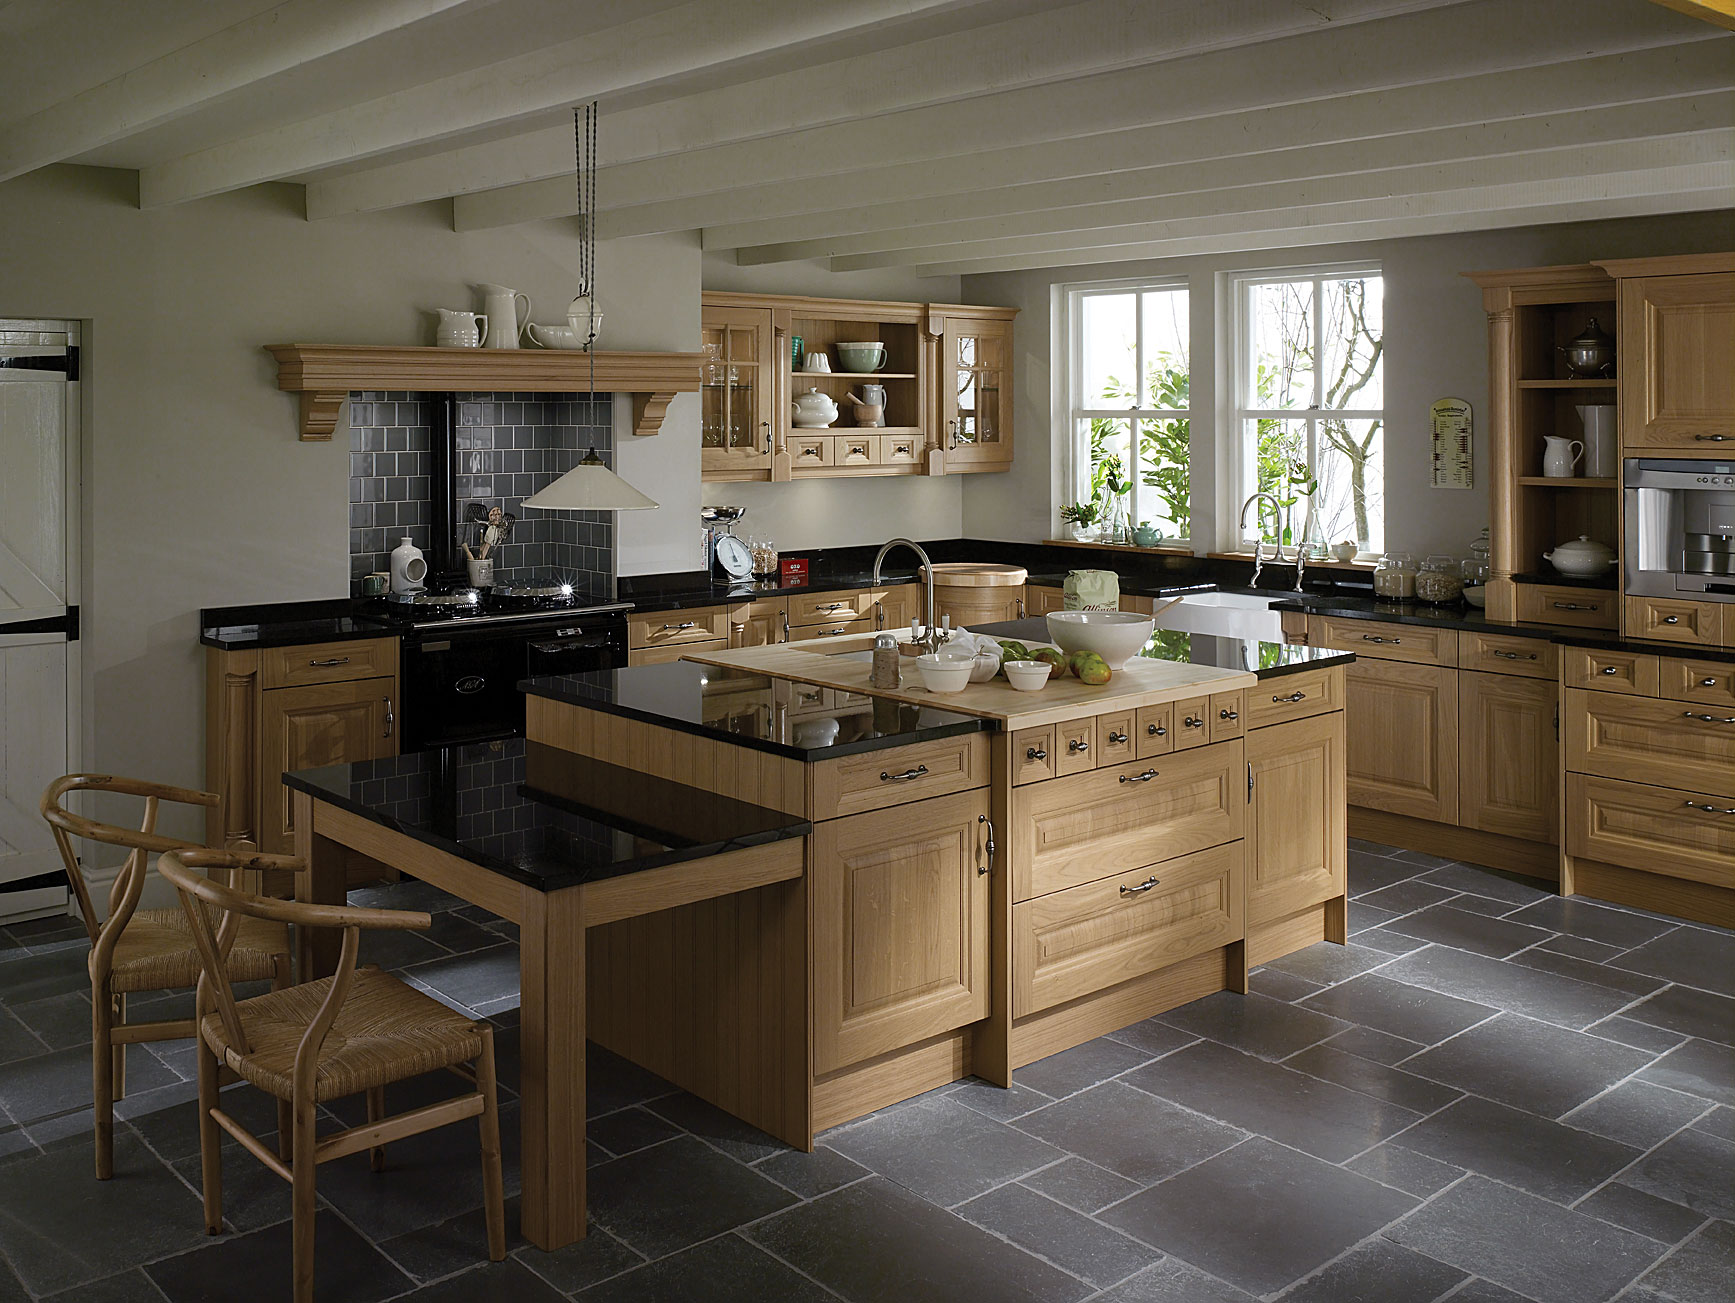 Woodbank kitchens northern ireland based kitchen design for Classic kitchen designs photos